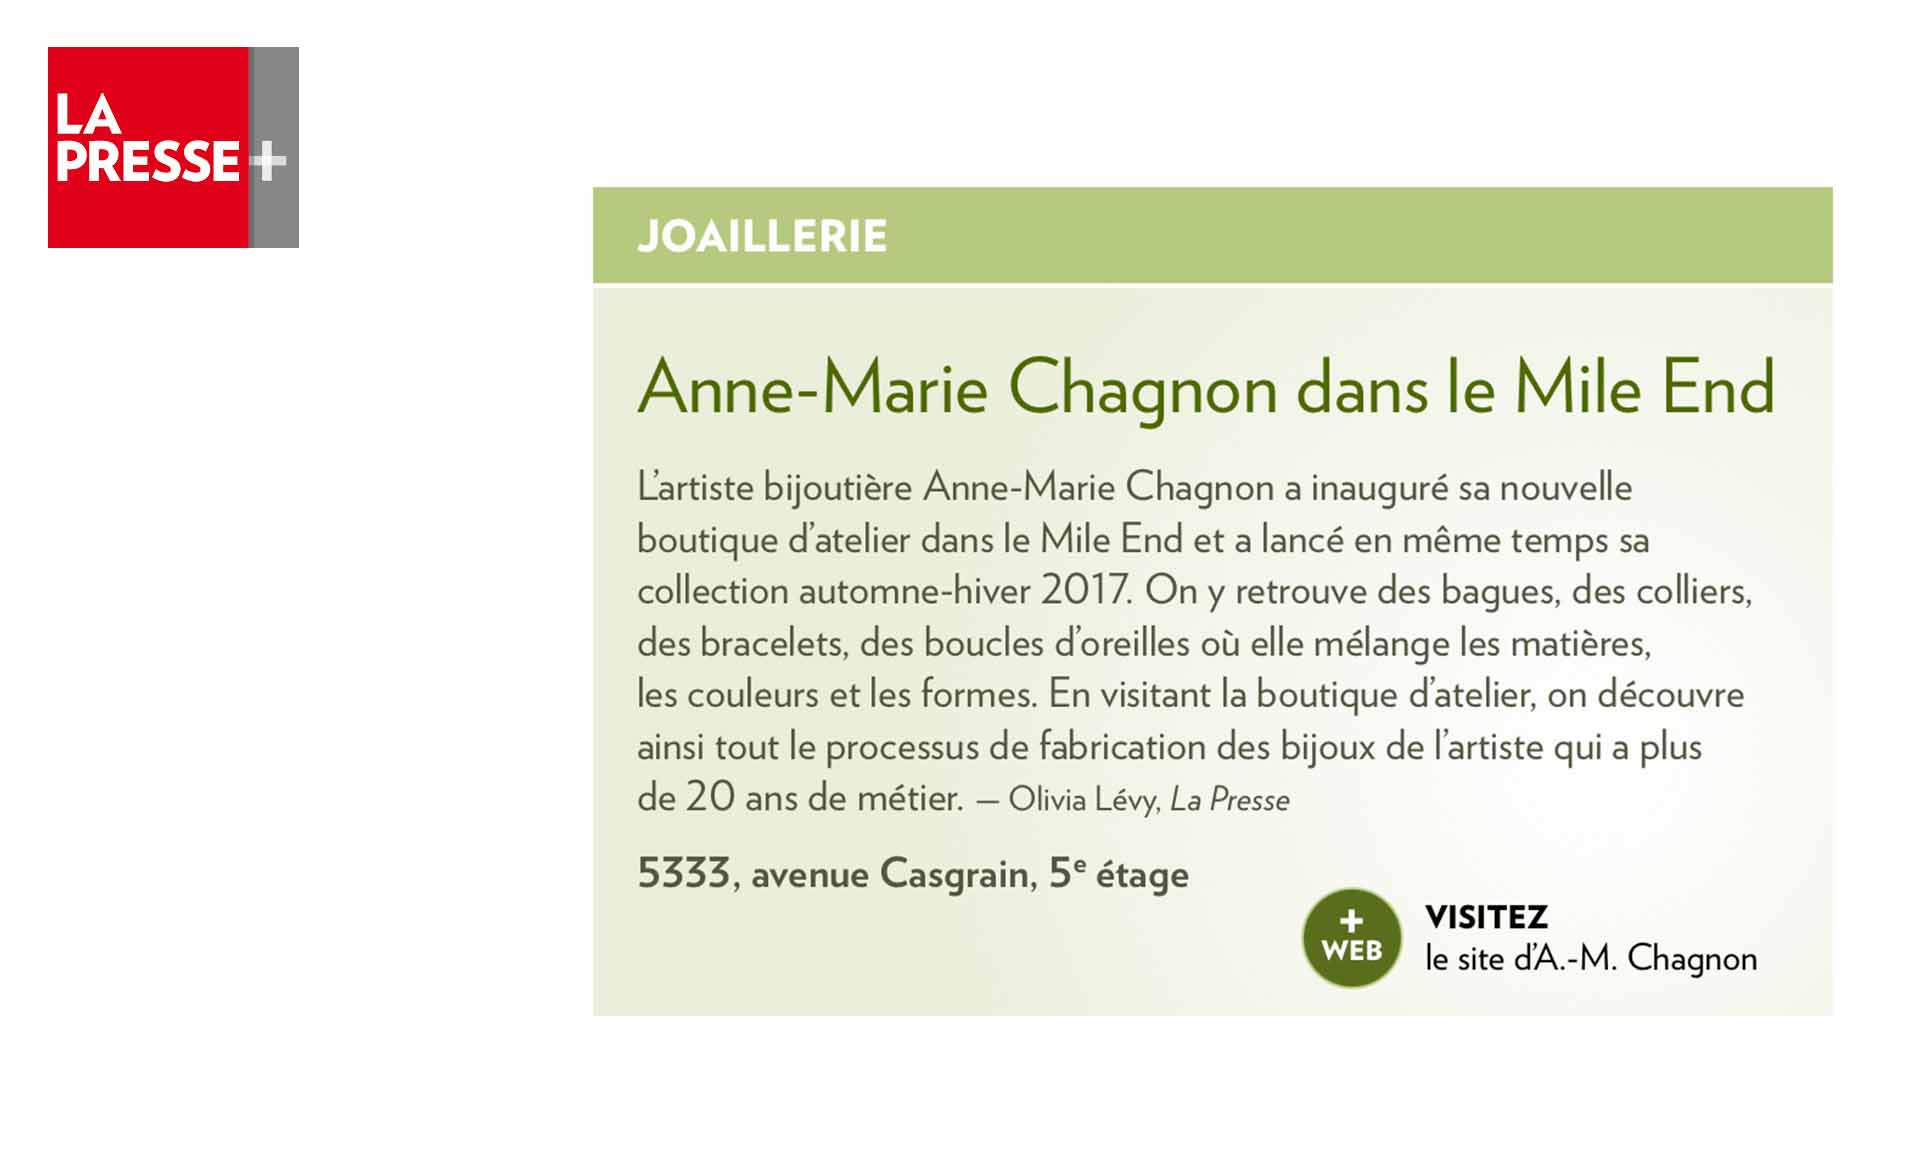 Anne-Marie Chagnon in La Presse plus